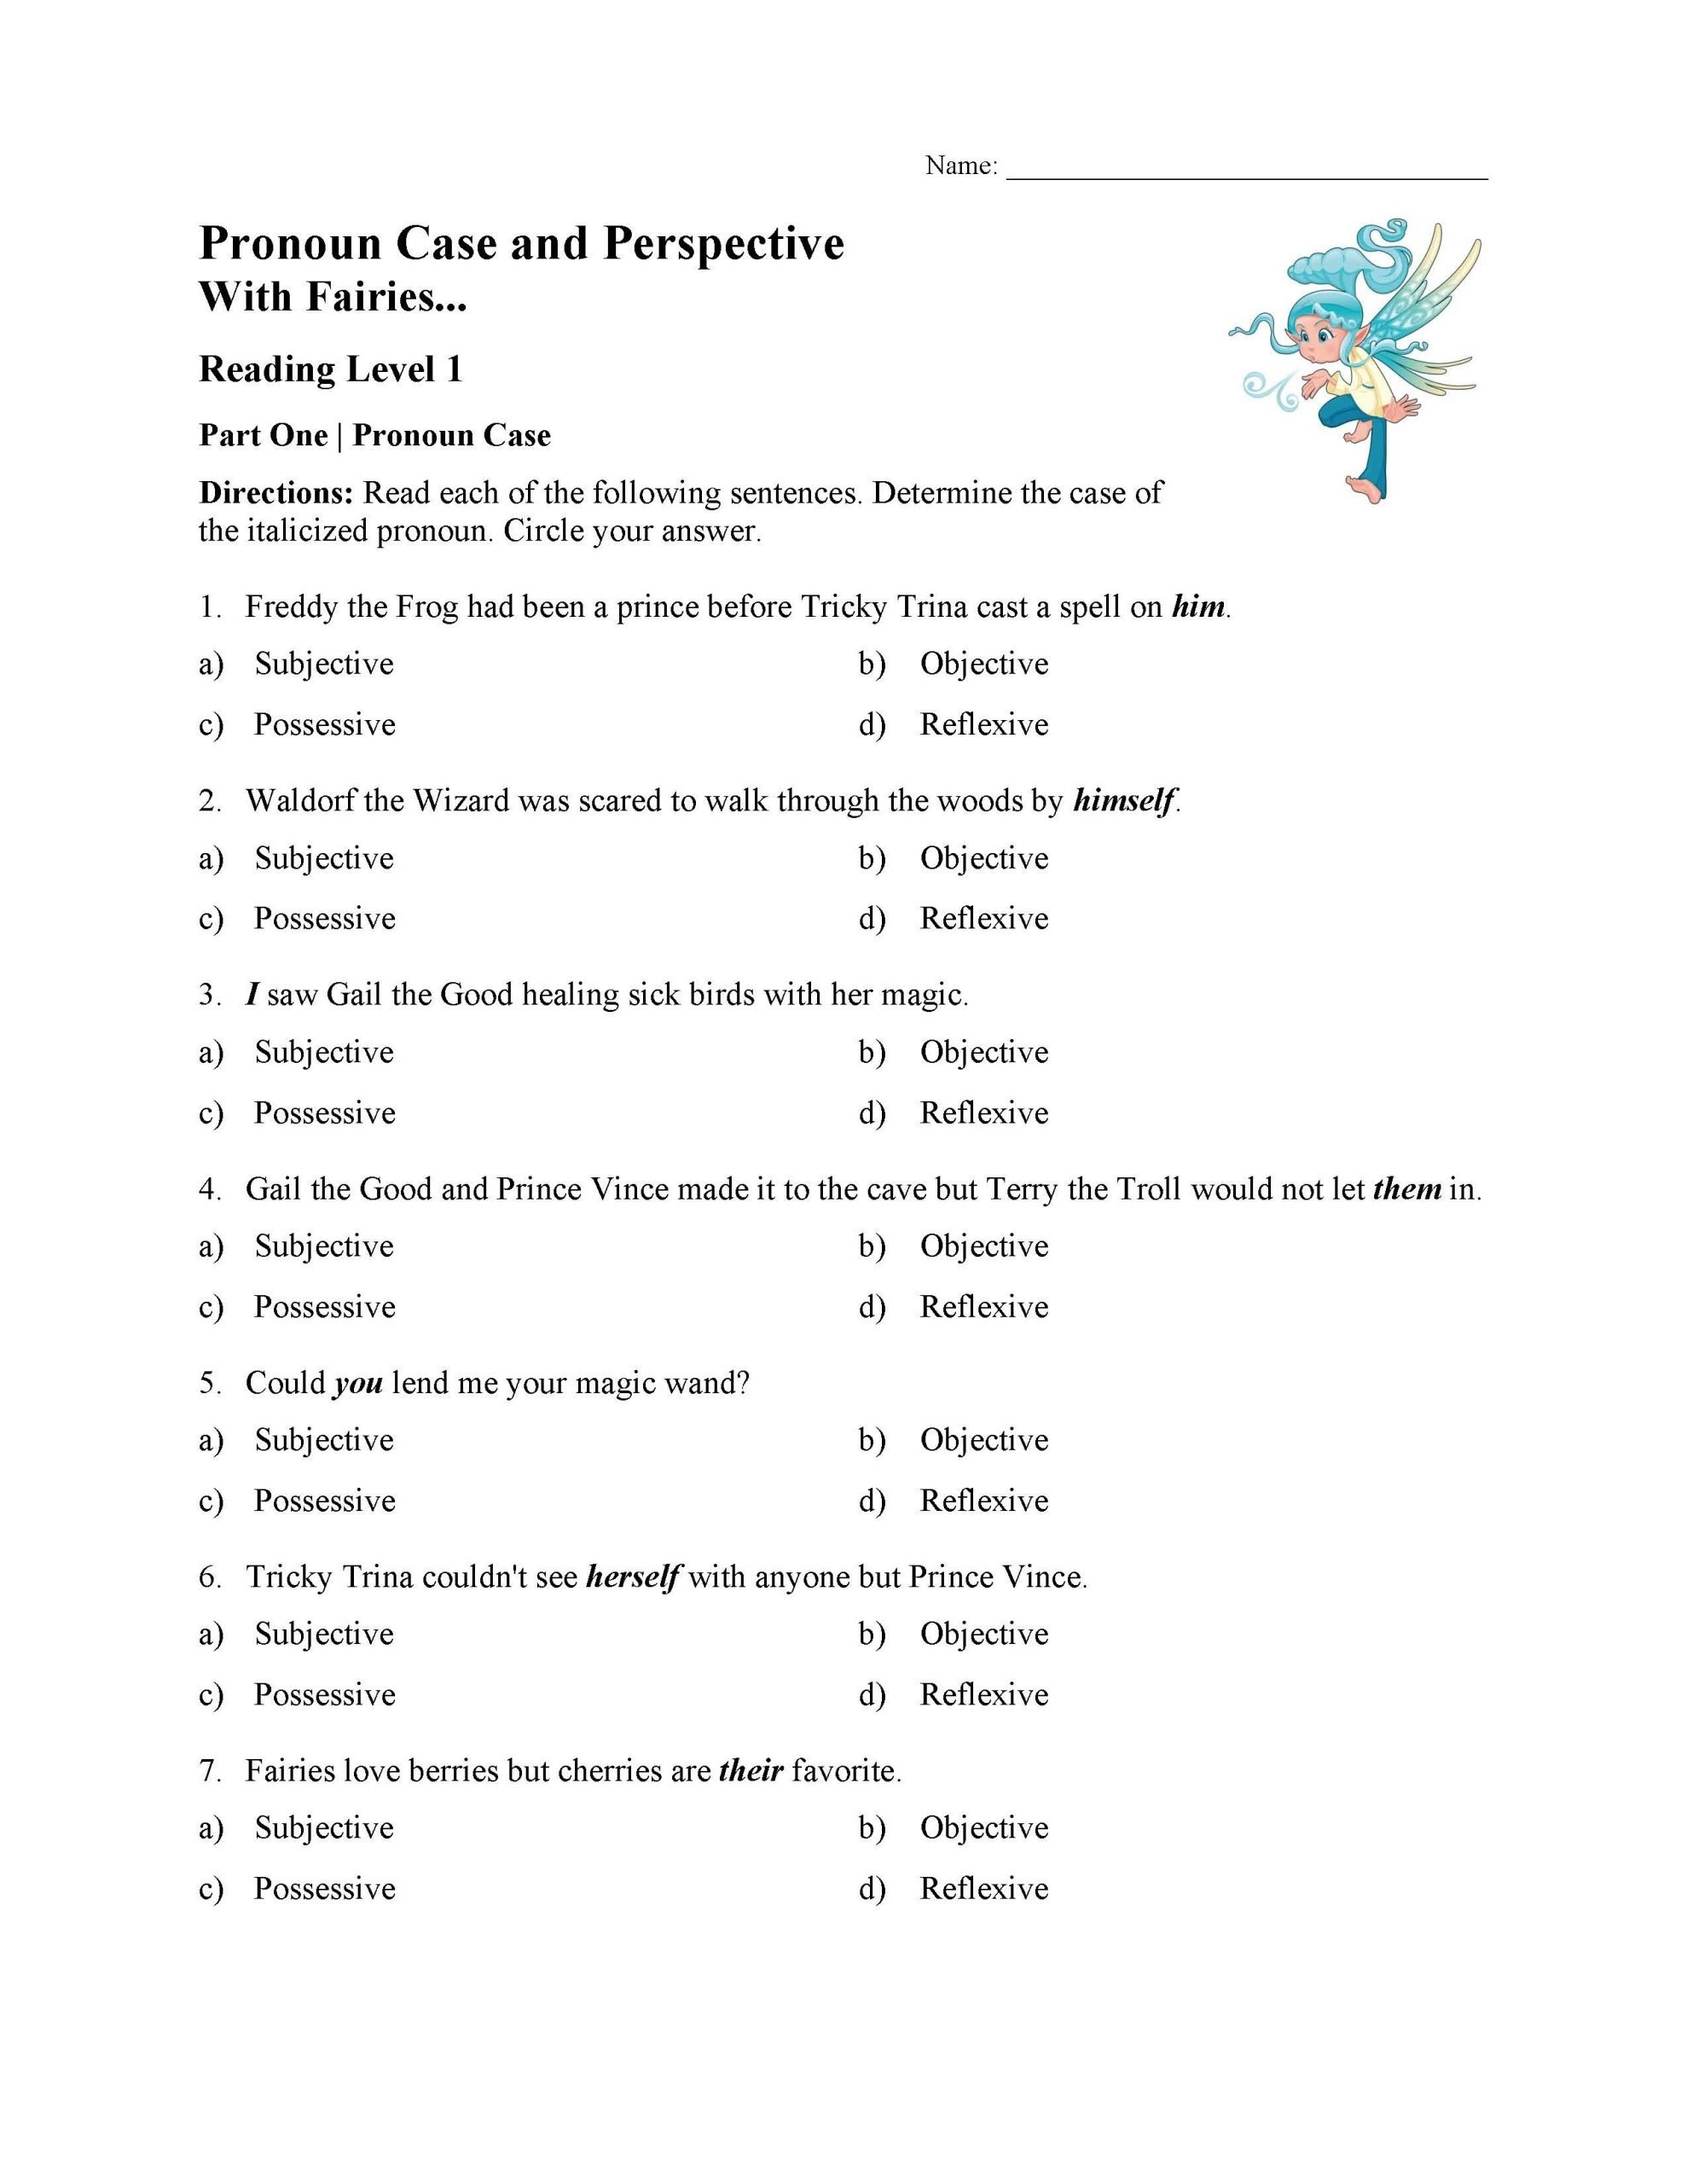 pronoun case and perspective worksheet reading level 01 01